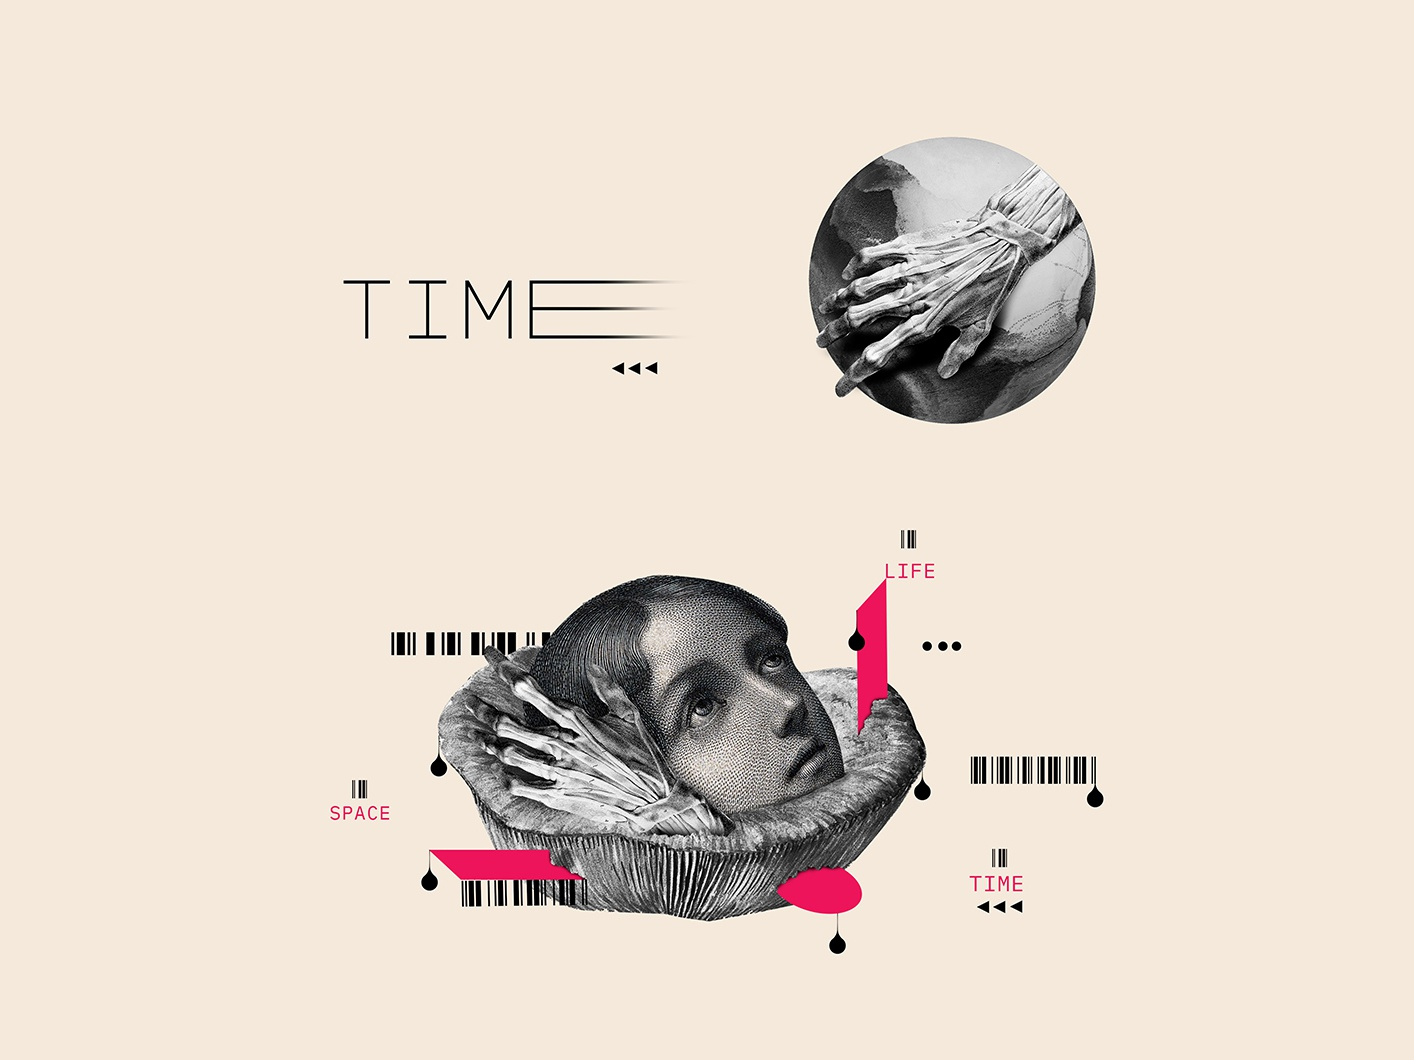 Space & Time | Collage Serie 007 abstract colors illustrator minimal nature dribbble art artcollage design photoshop illustration collage